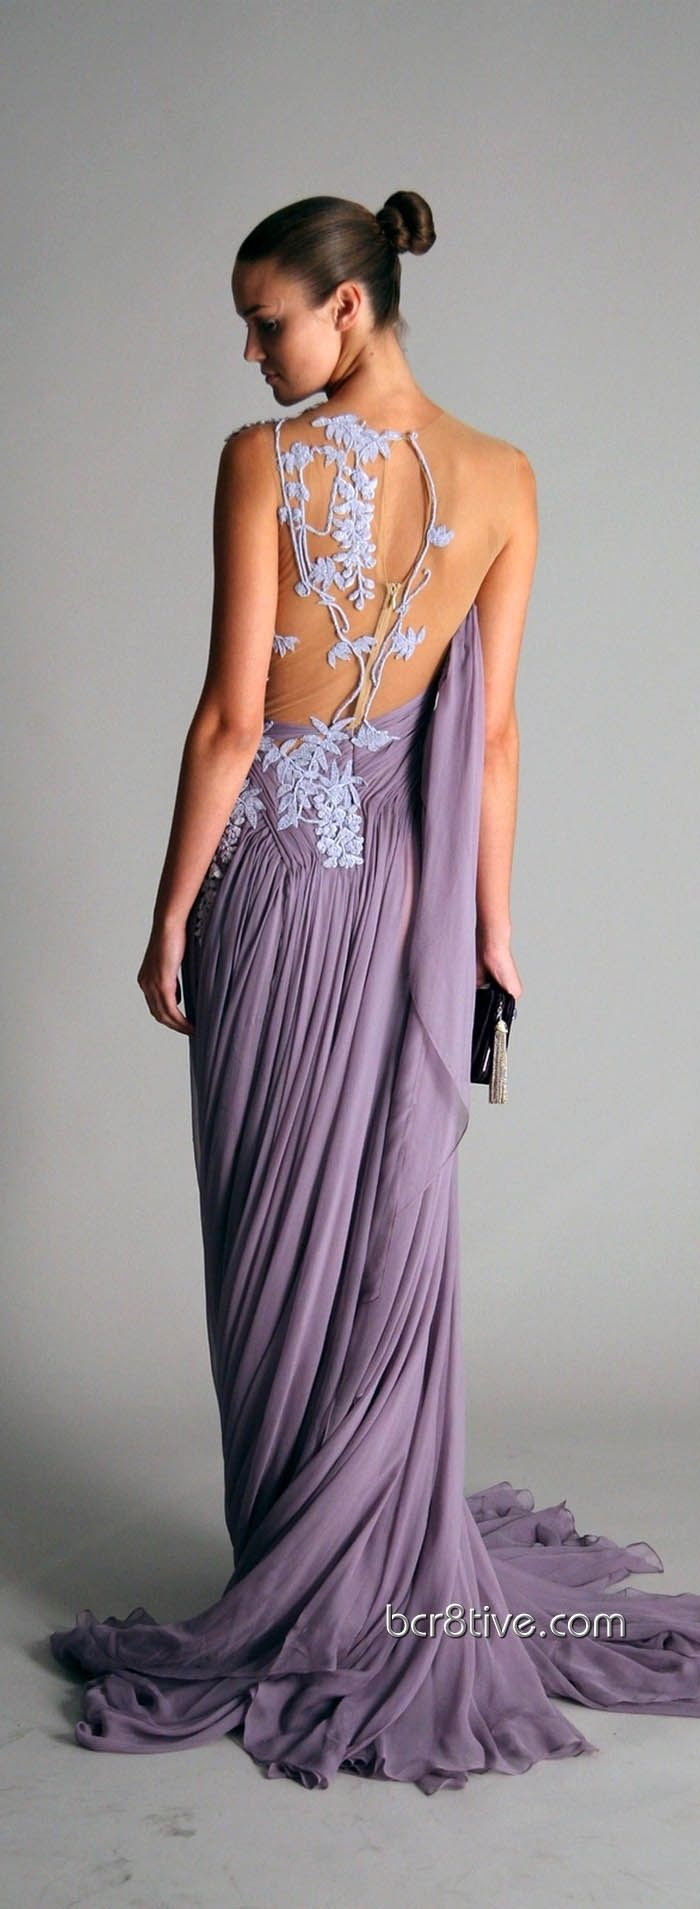 72 best Marchesa images on Pinterest | High fashion, Fashion show ...